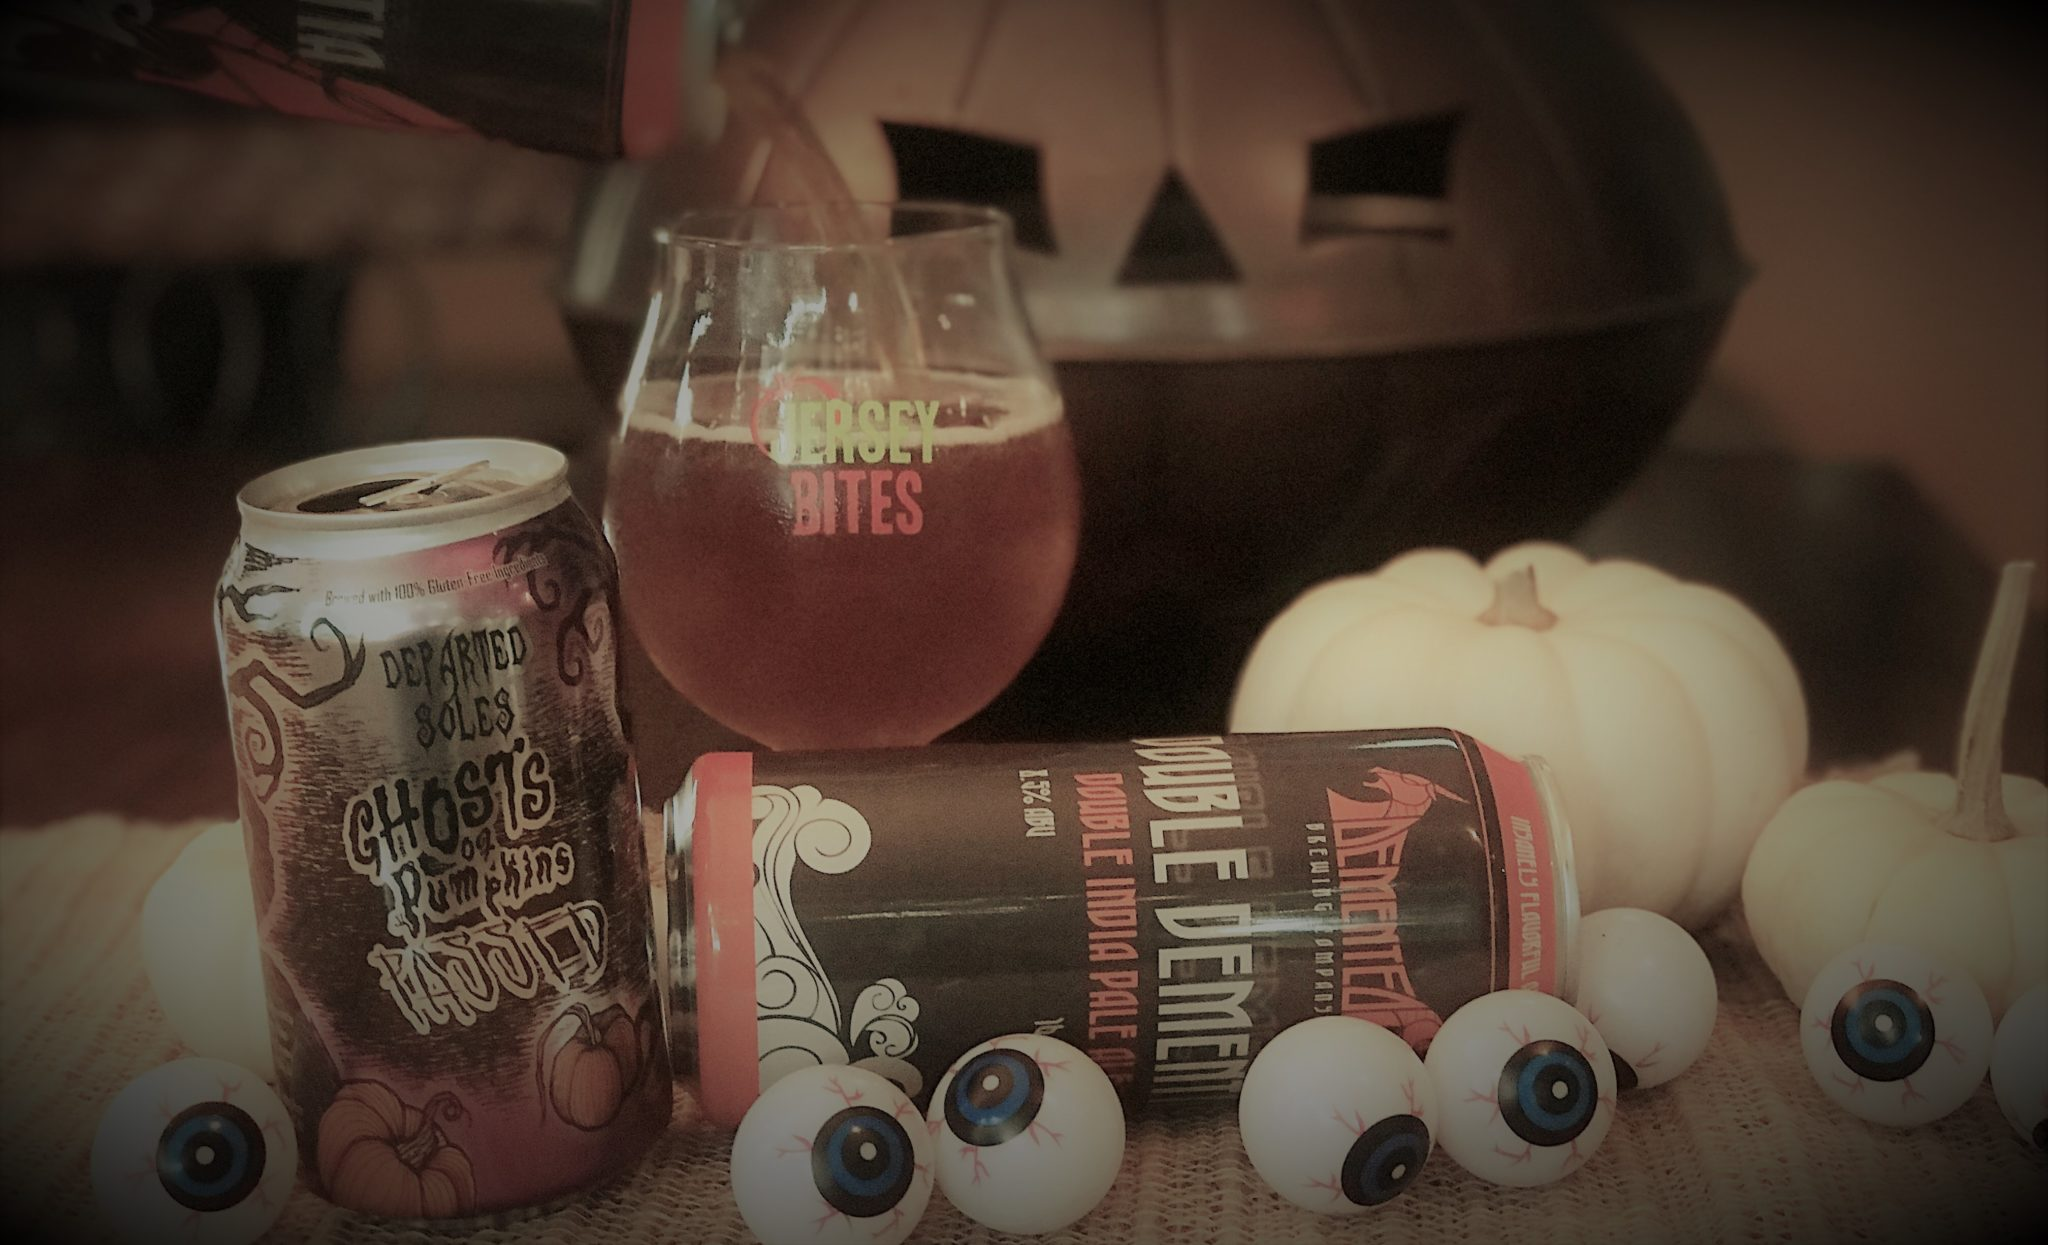 Scary craft beers